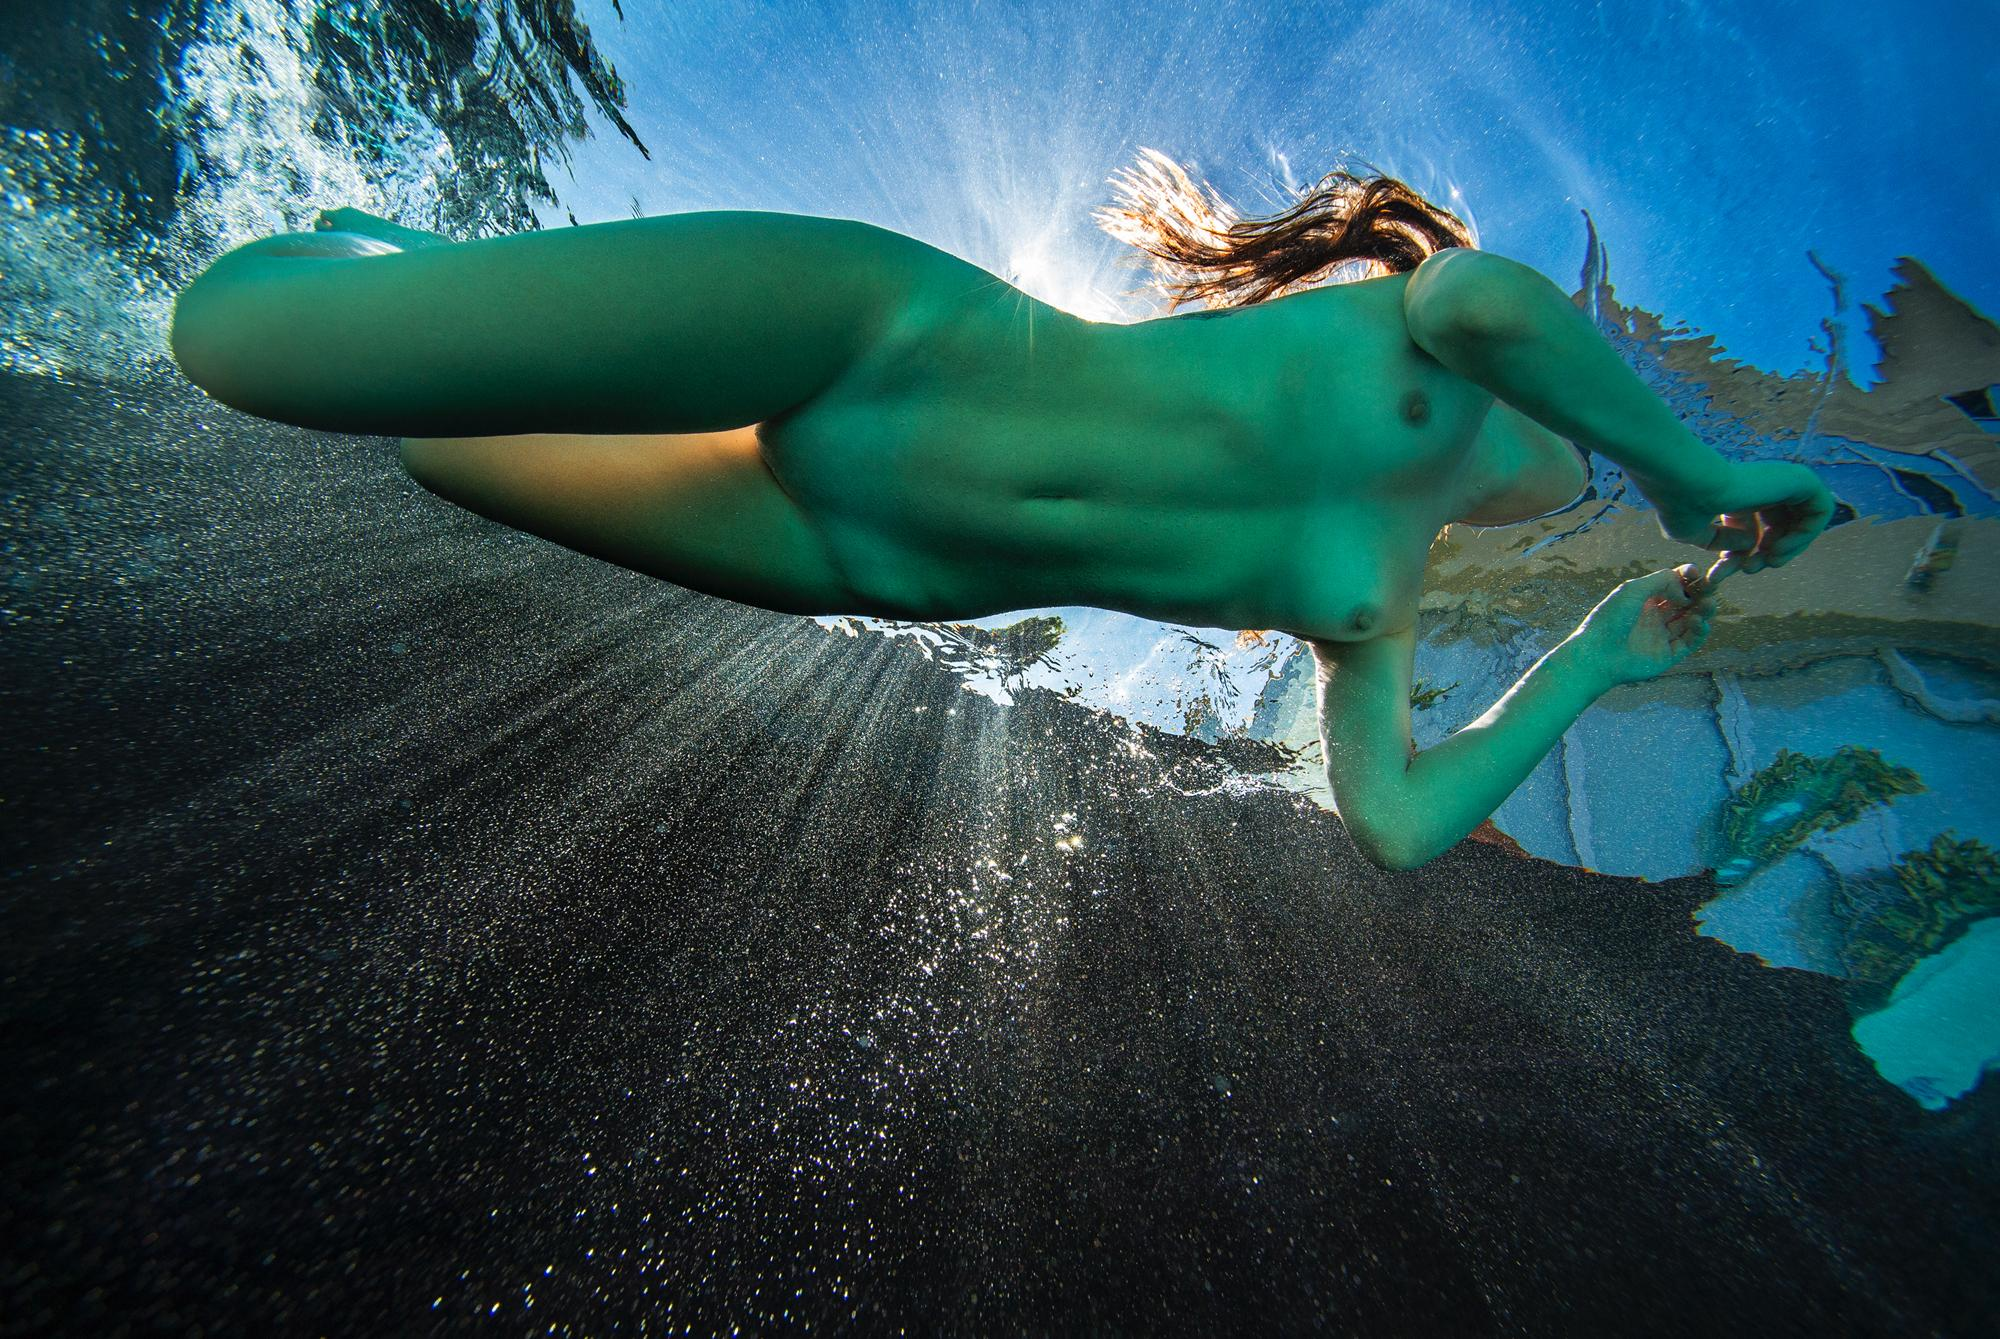 The Real Mermaid - underwater photo of naked young woman in sunbeams